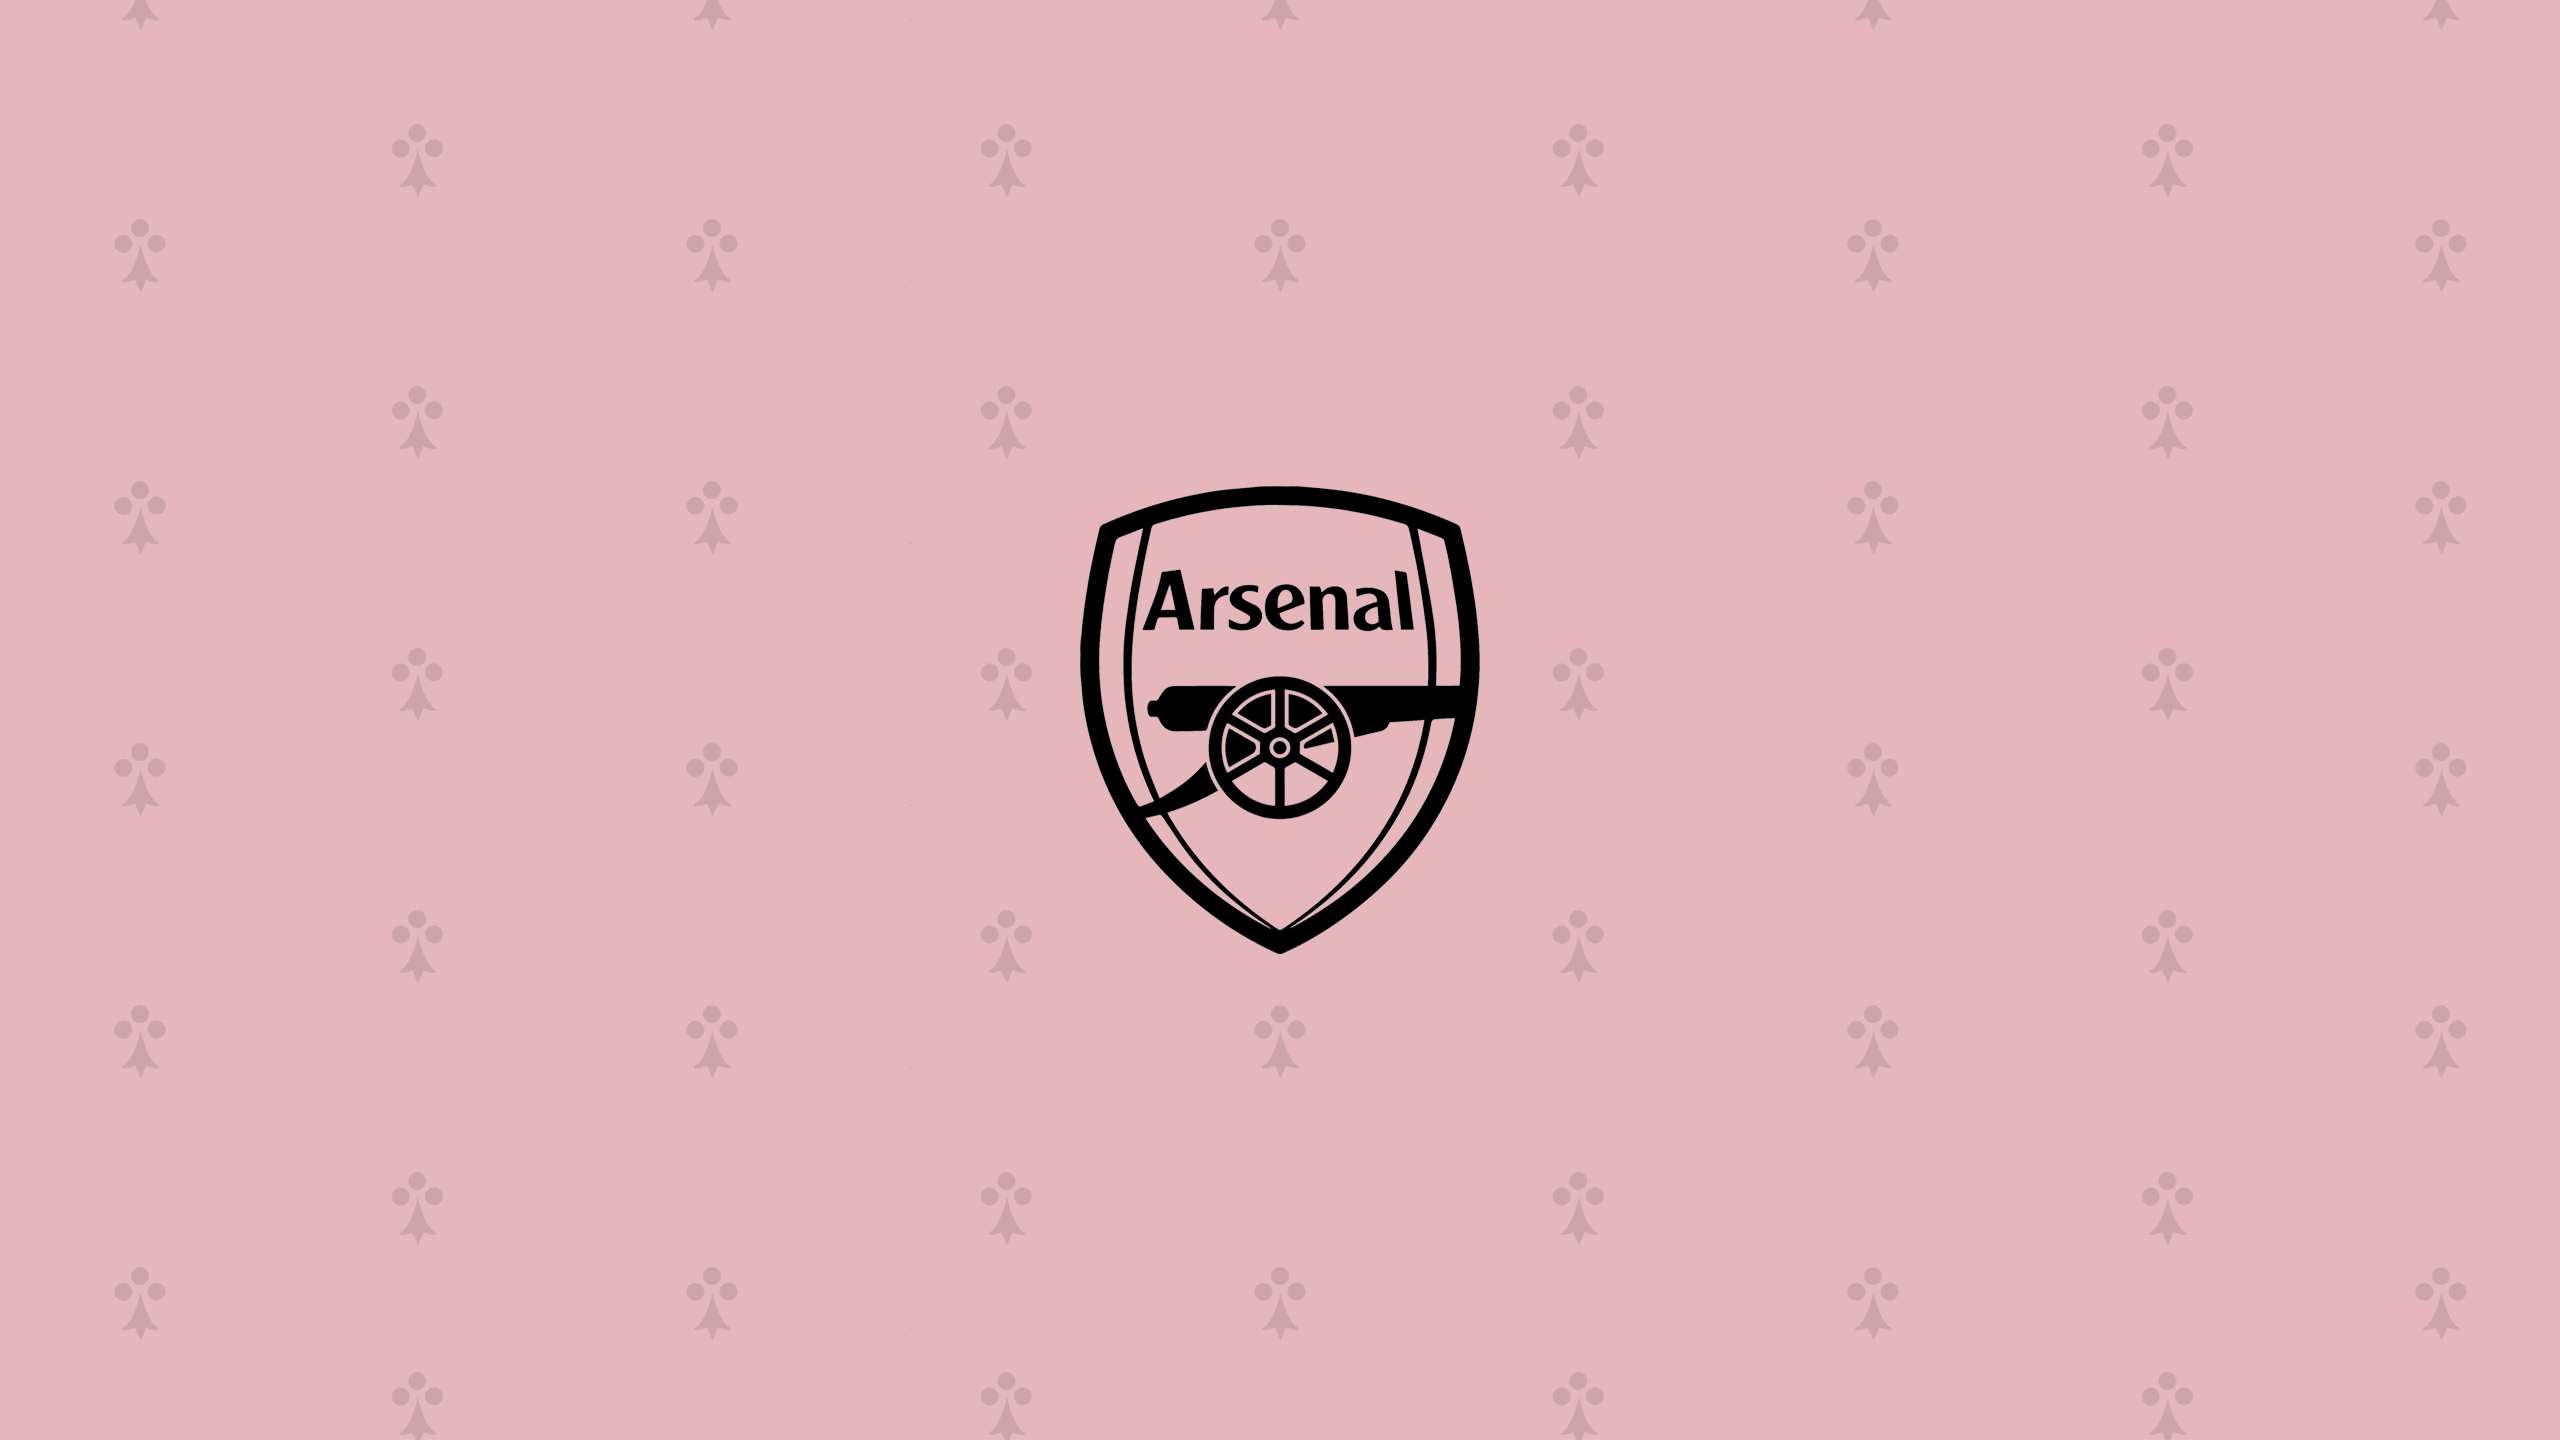 Arsenal FC (Third)